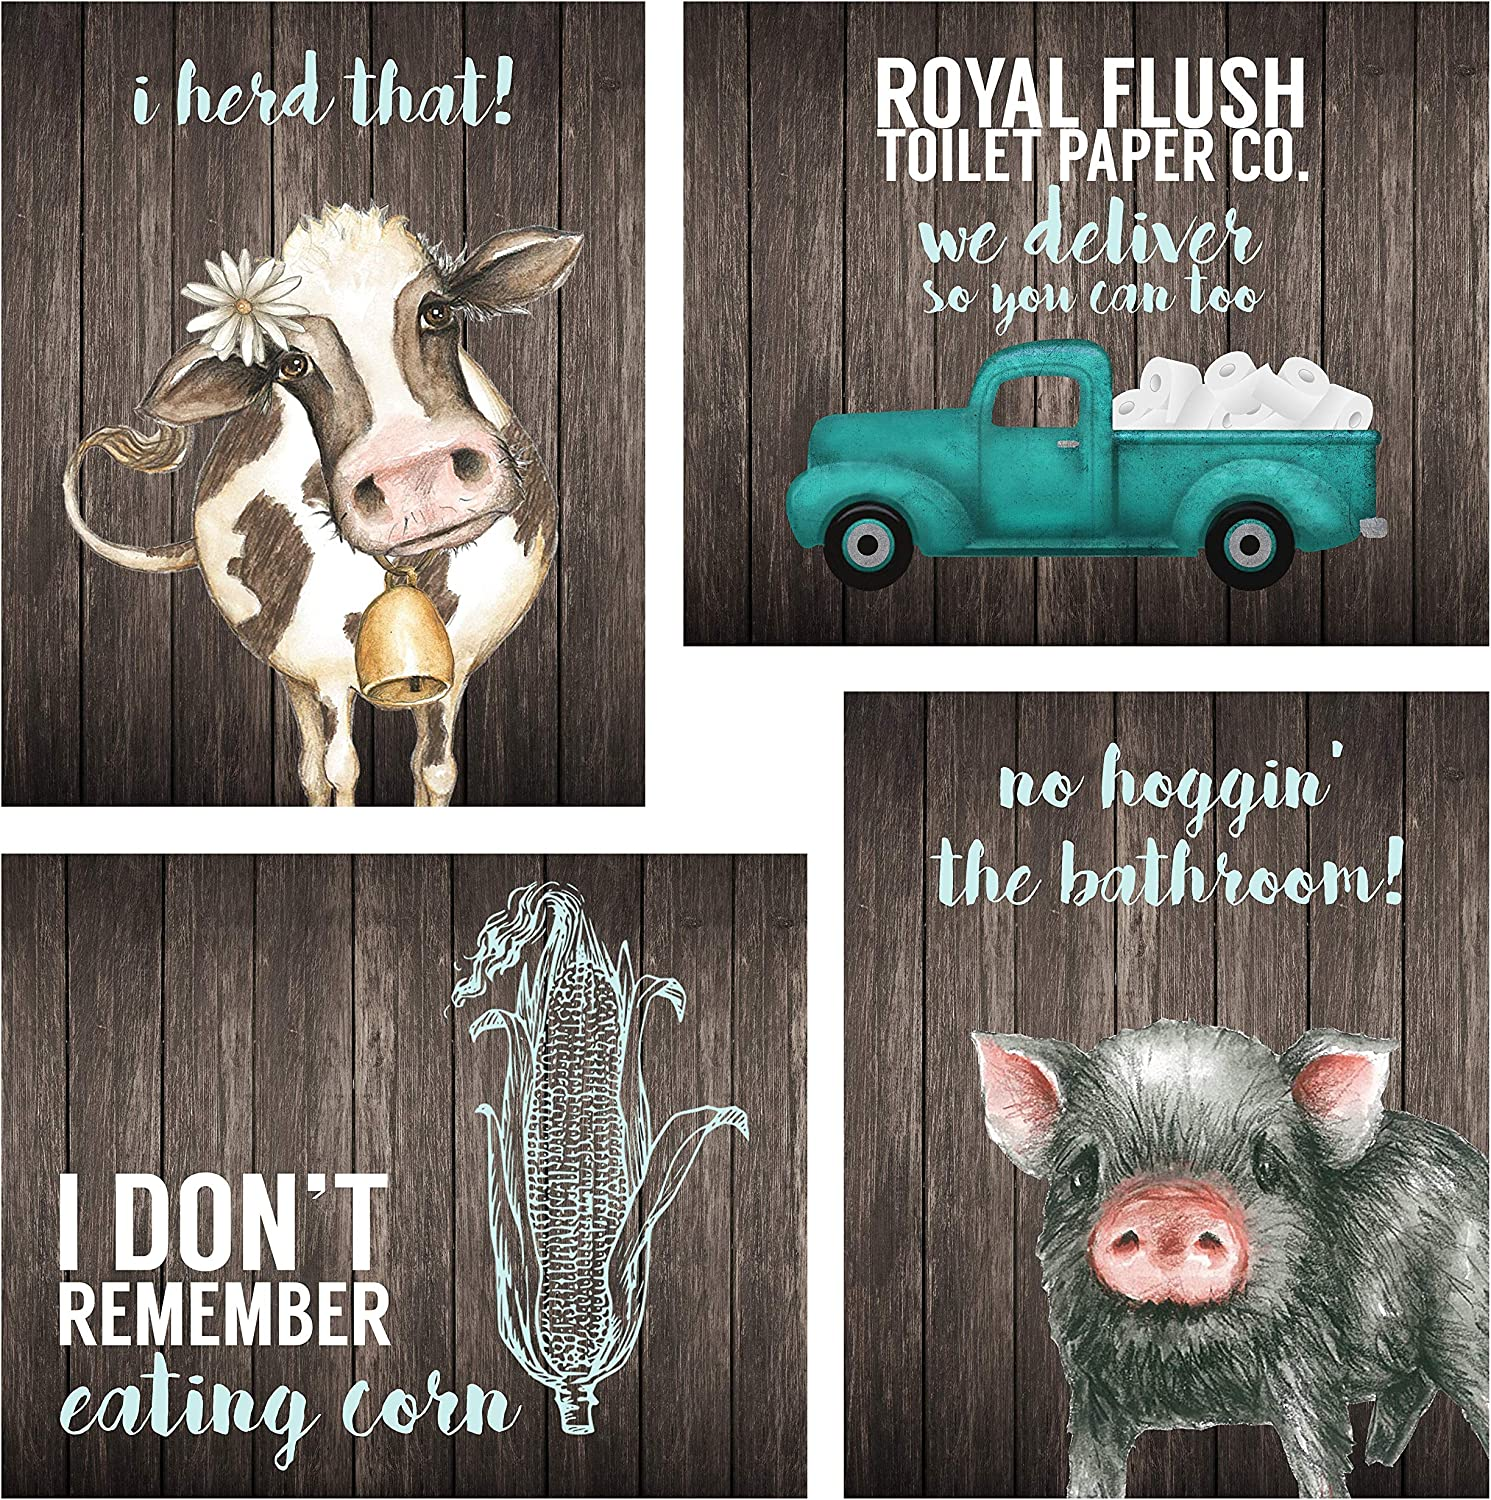 Silly Goose Gifts Bathroom Themed Decor Art Print Wall Art Funny Gift Sets Typography Rustic Unframed Pictures Signs Rules (Farm)